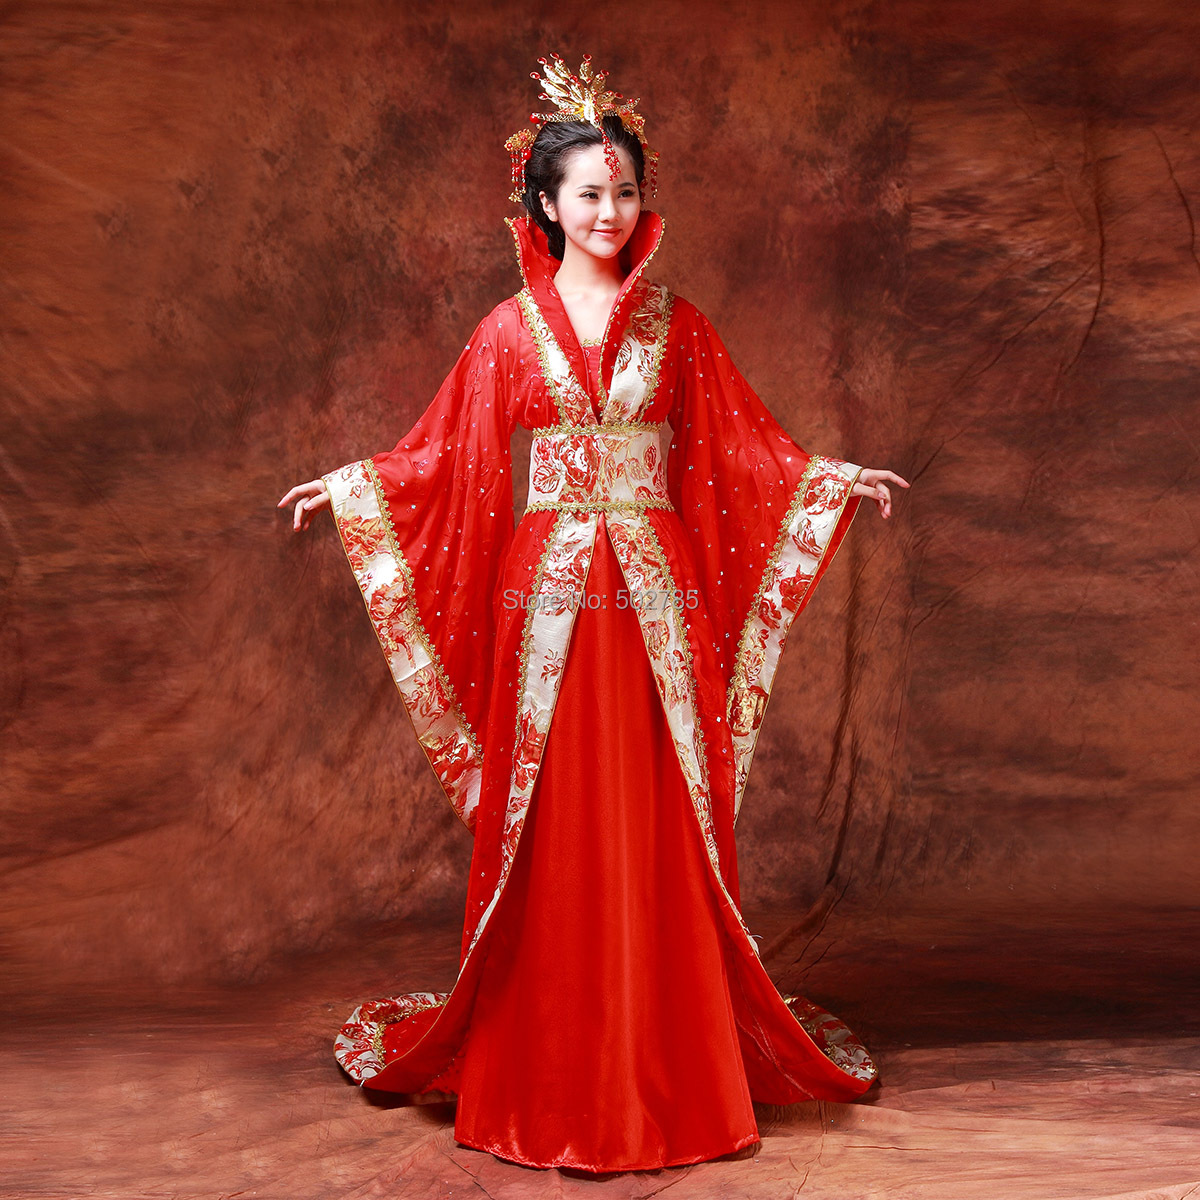 Free shipment Costume tang suit hanfu train queen clothes damings princess costume - Beefoto Photographic Aluminium Alloy Munufacturer store